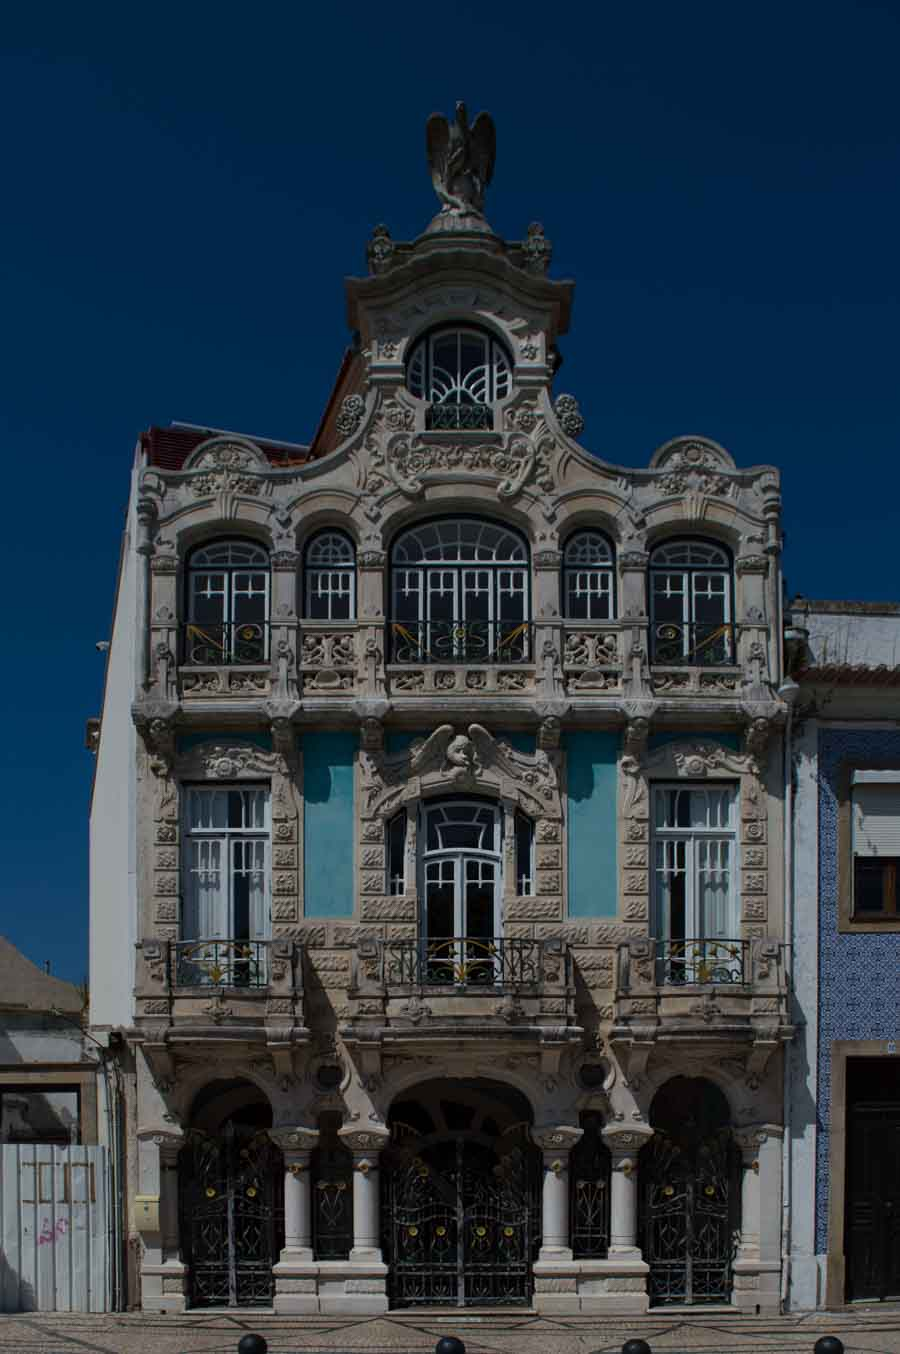 Casa do Chà de Aveiro